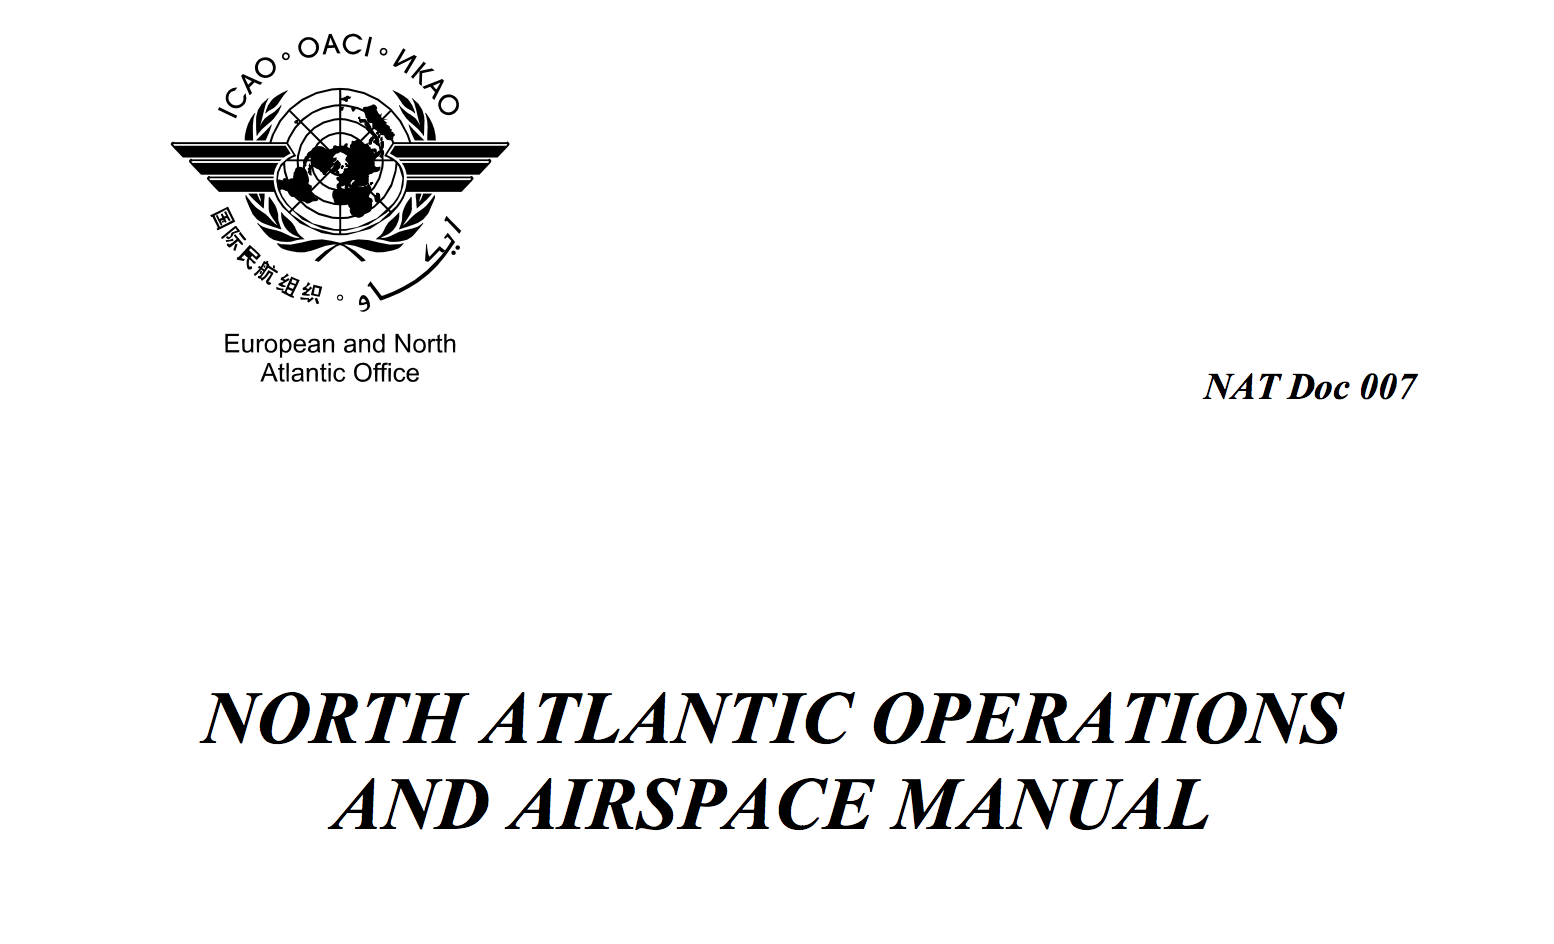 2018 Edition: New NAT Doc 007 2018 – North Atlantic Airspace and Operations Manual